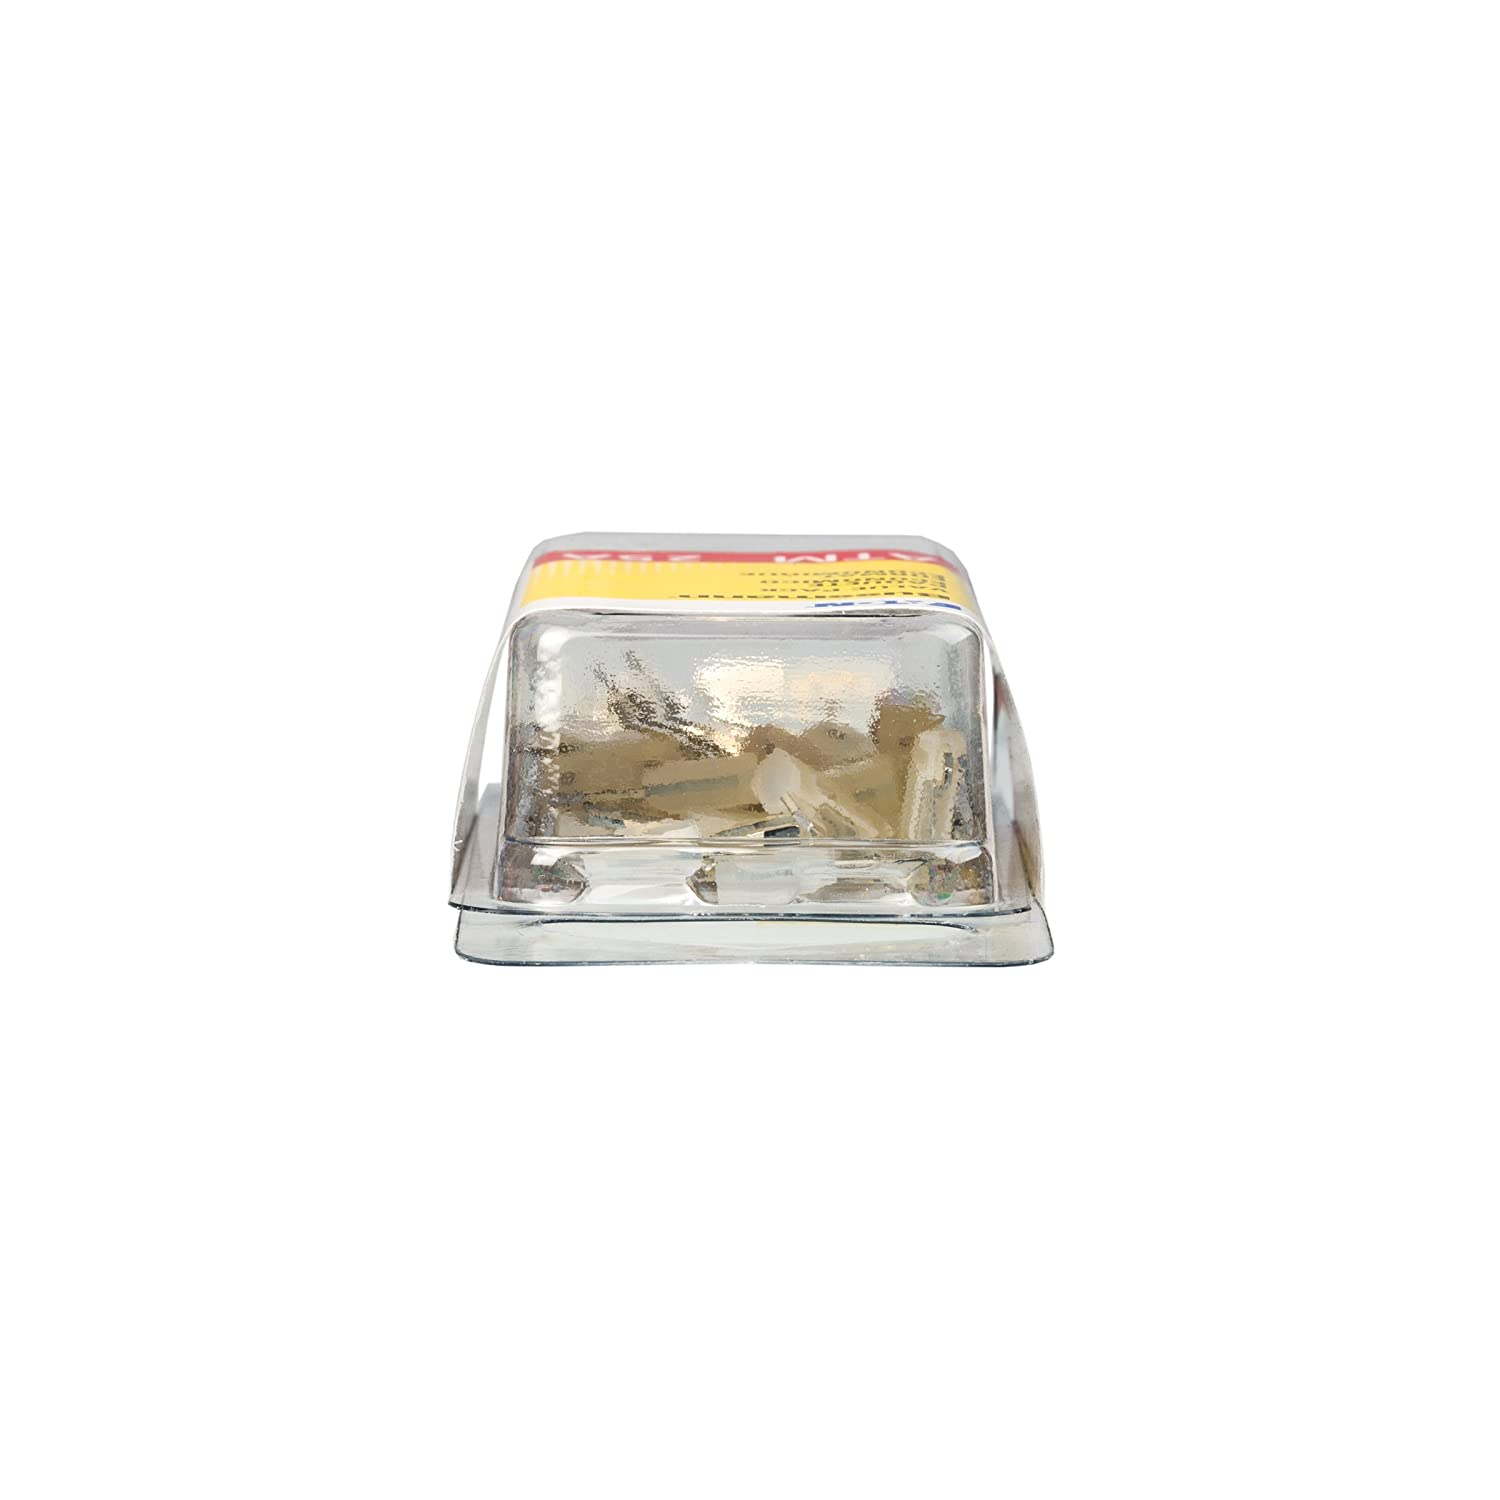 VP//ATM-25-RP Bussmann Clear 25 Amp Fast Acting ATM Mini Fuse, Pack of 25